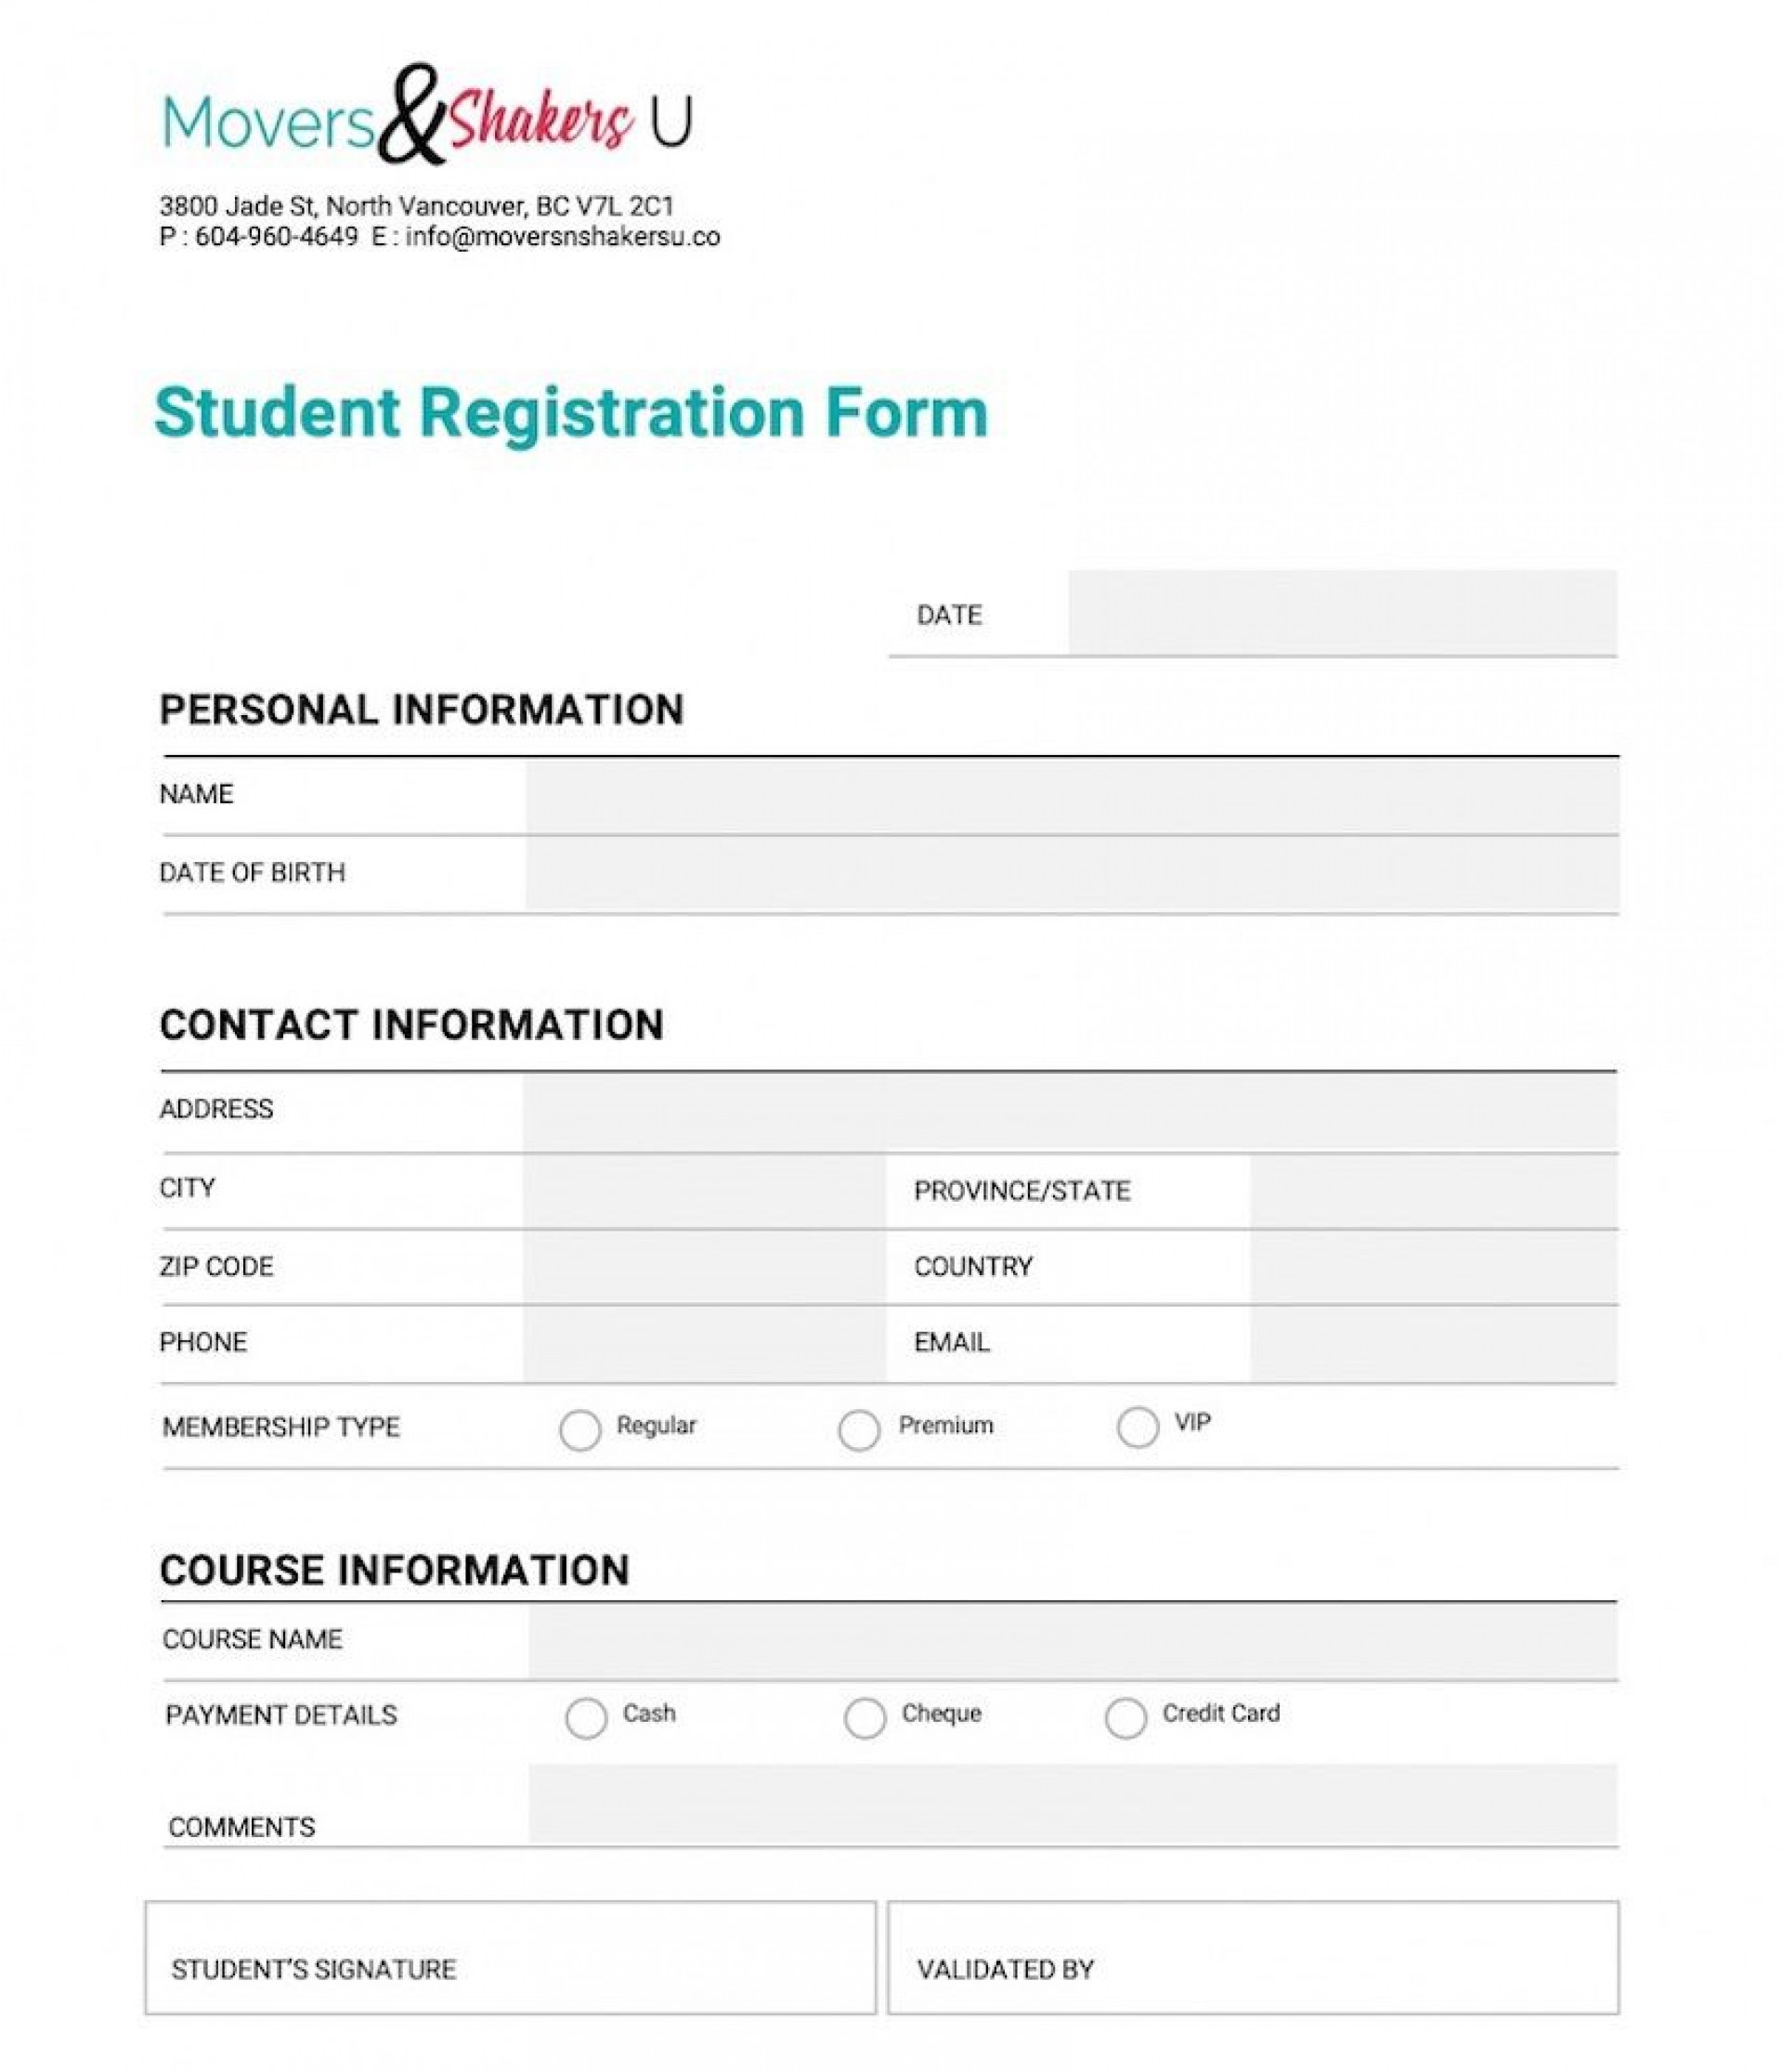 006 Excellent New Customer Form Template Word Picture  Registration Account Feedback1920